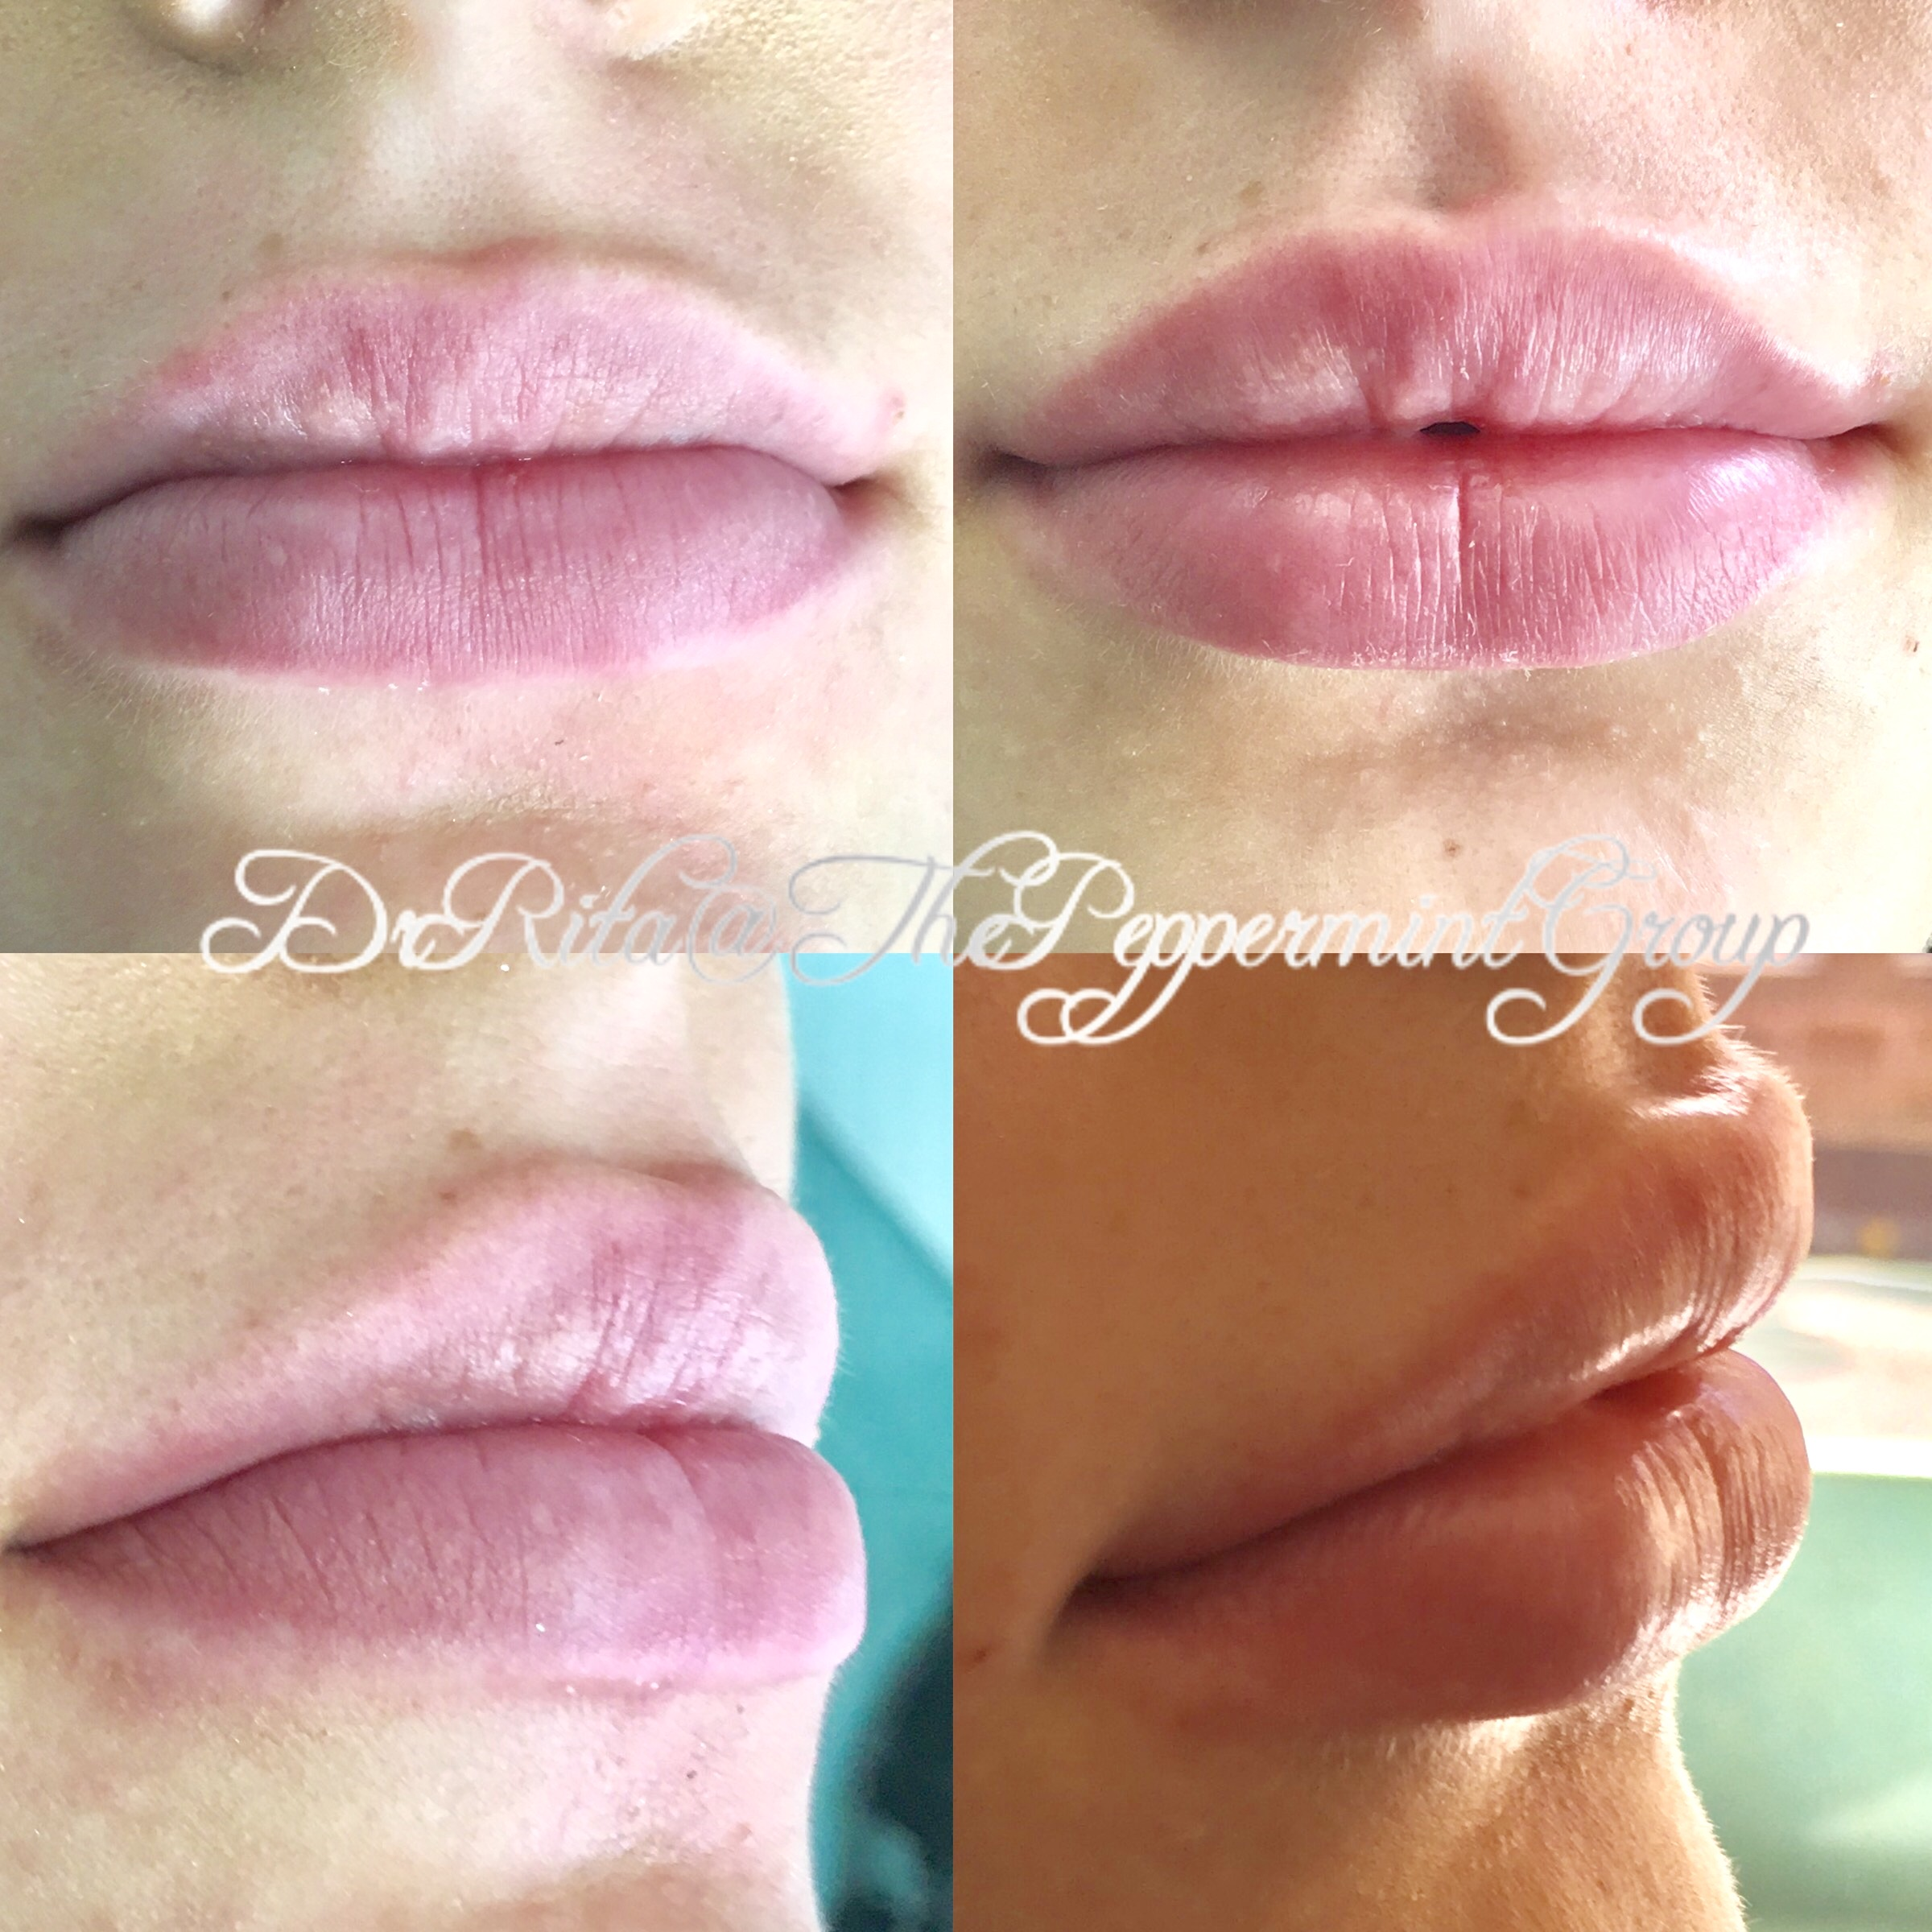 Facial Filler Page - Lip Augmentation